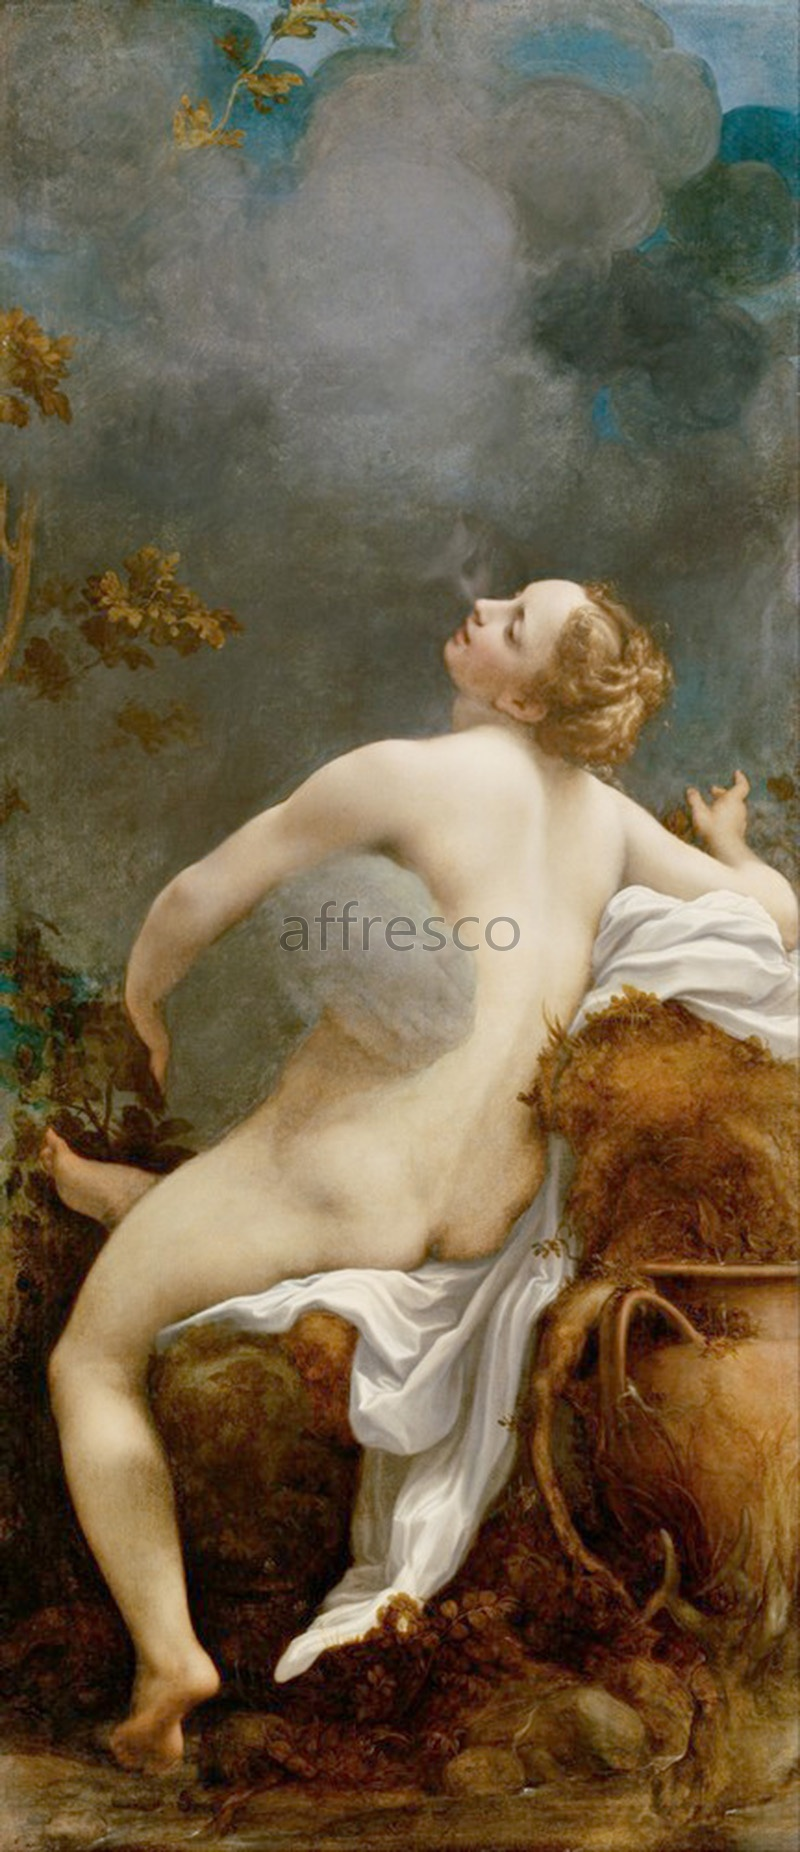 Classical antiquity themes | Antonio Allegri called Correggio Jupiter and Io | Affresco Factory